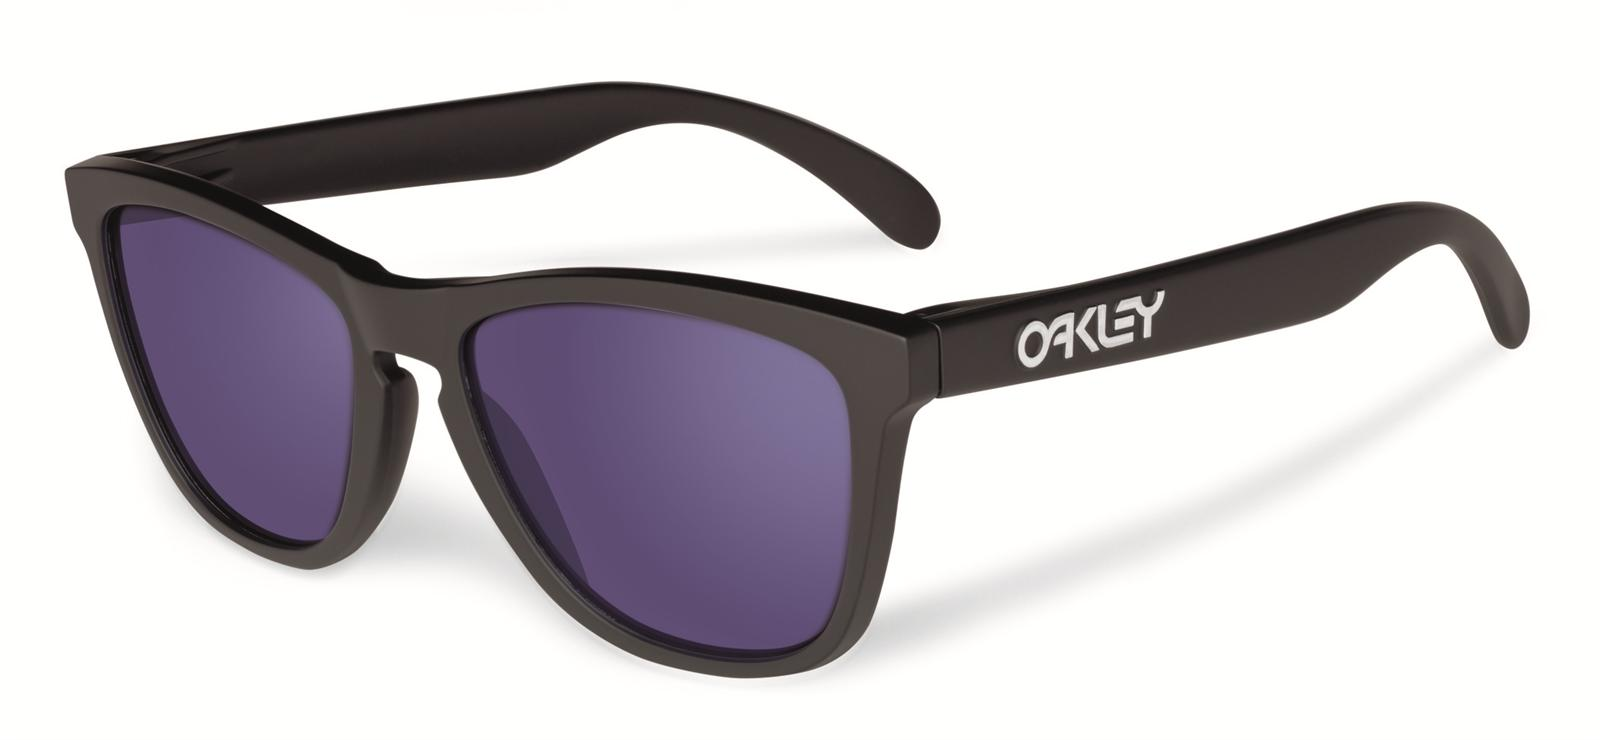 71b4bac30f Oakley Infinite Hero Frogskin Sunglasses 24-348 - Free Shipping on Orders  Over  99 at Summit Racing